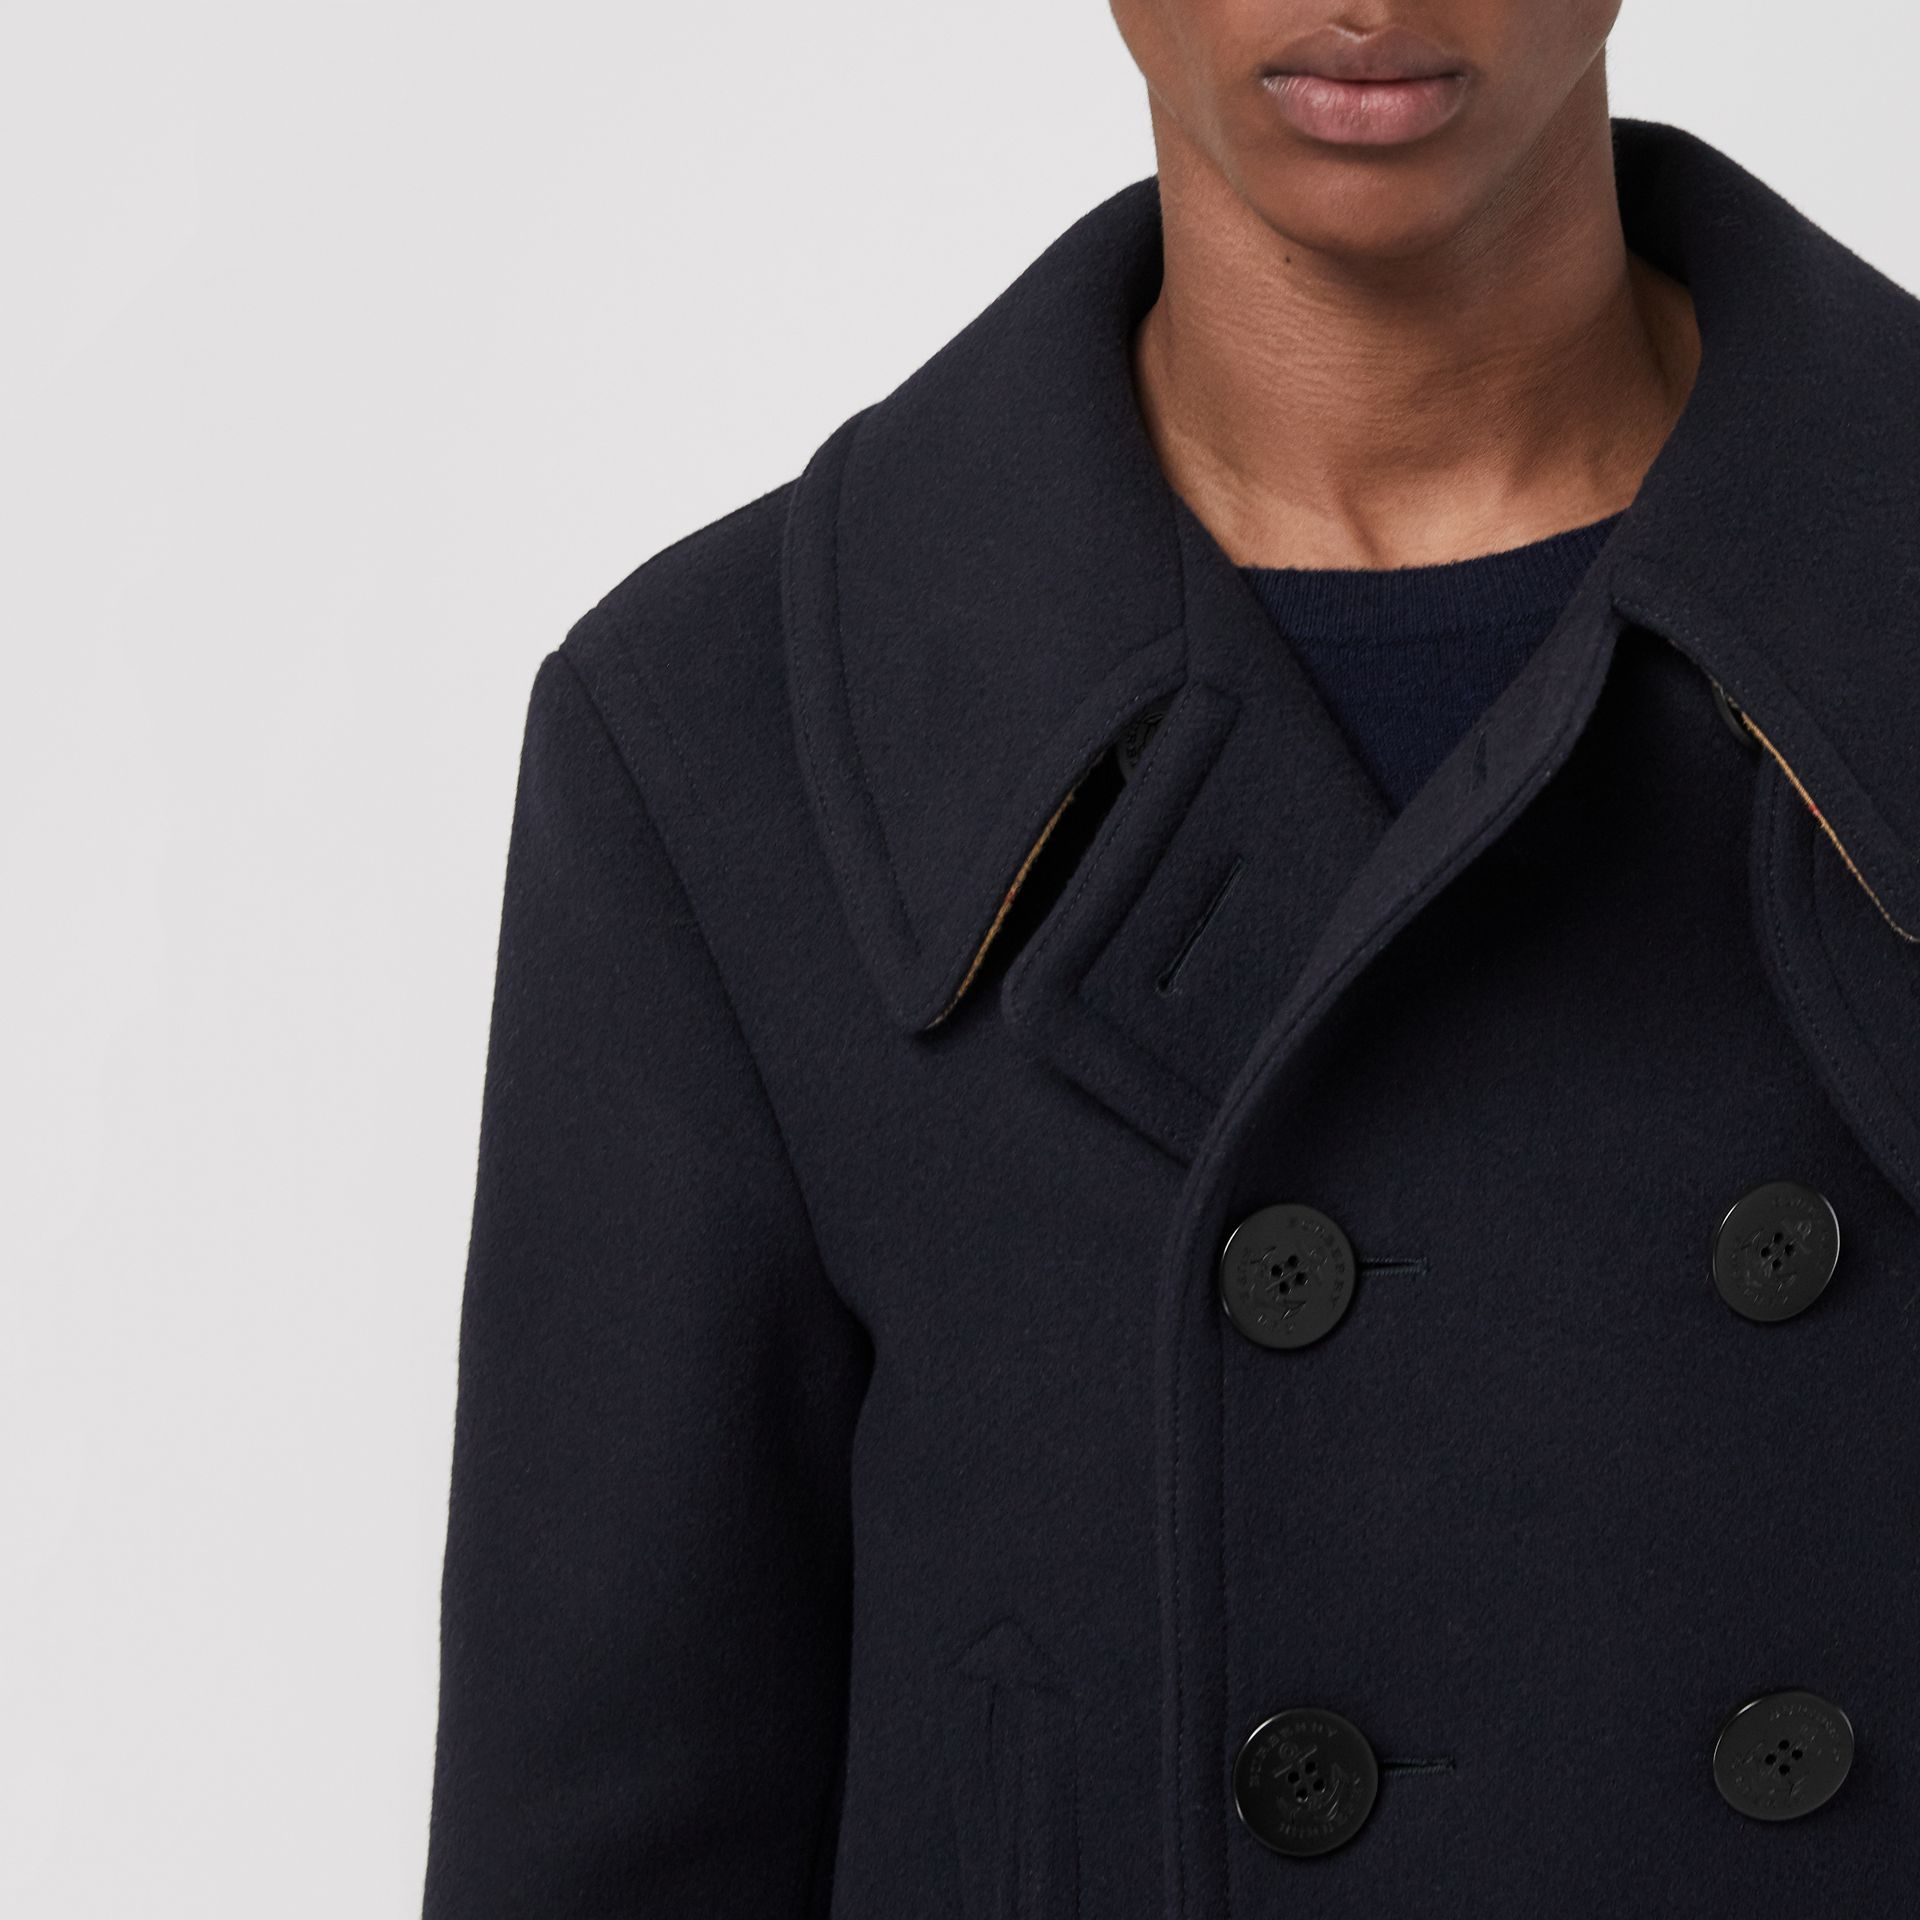 Wool Blend Pea Coat in Navy - Men | Burberry - gallery image 4